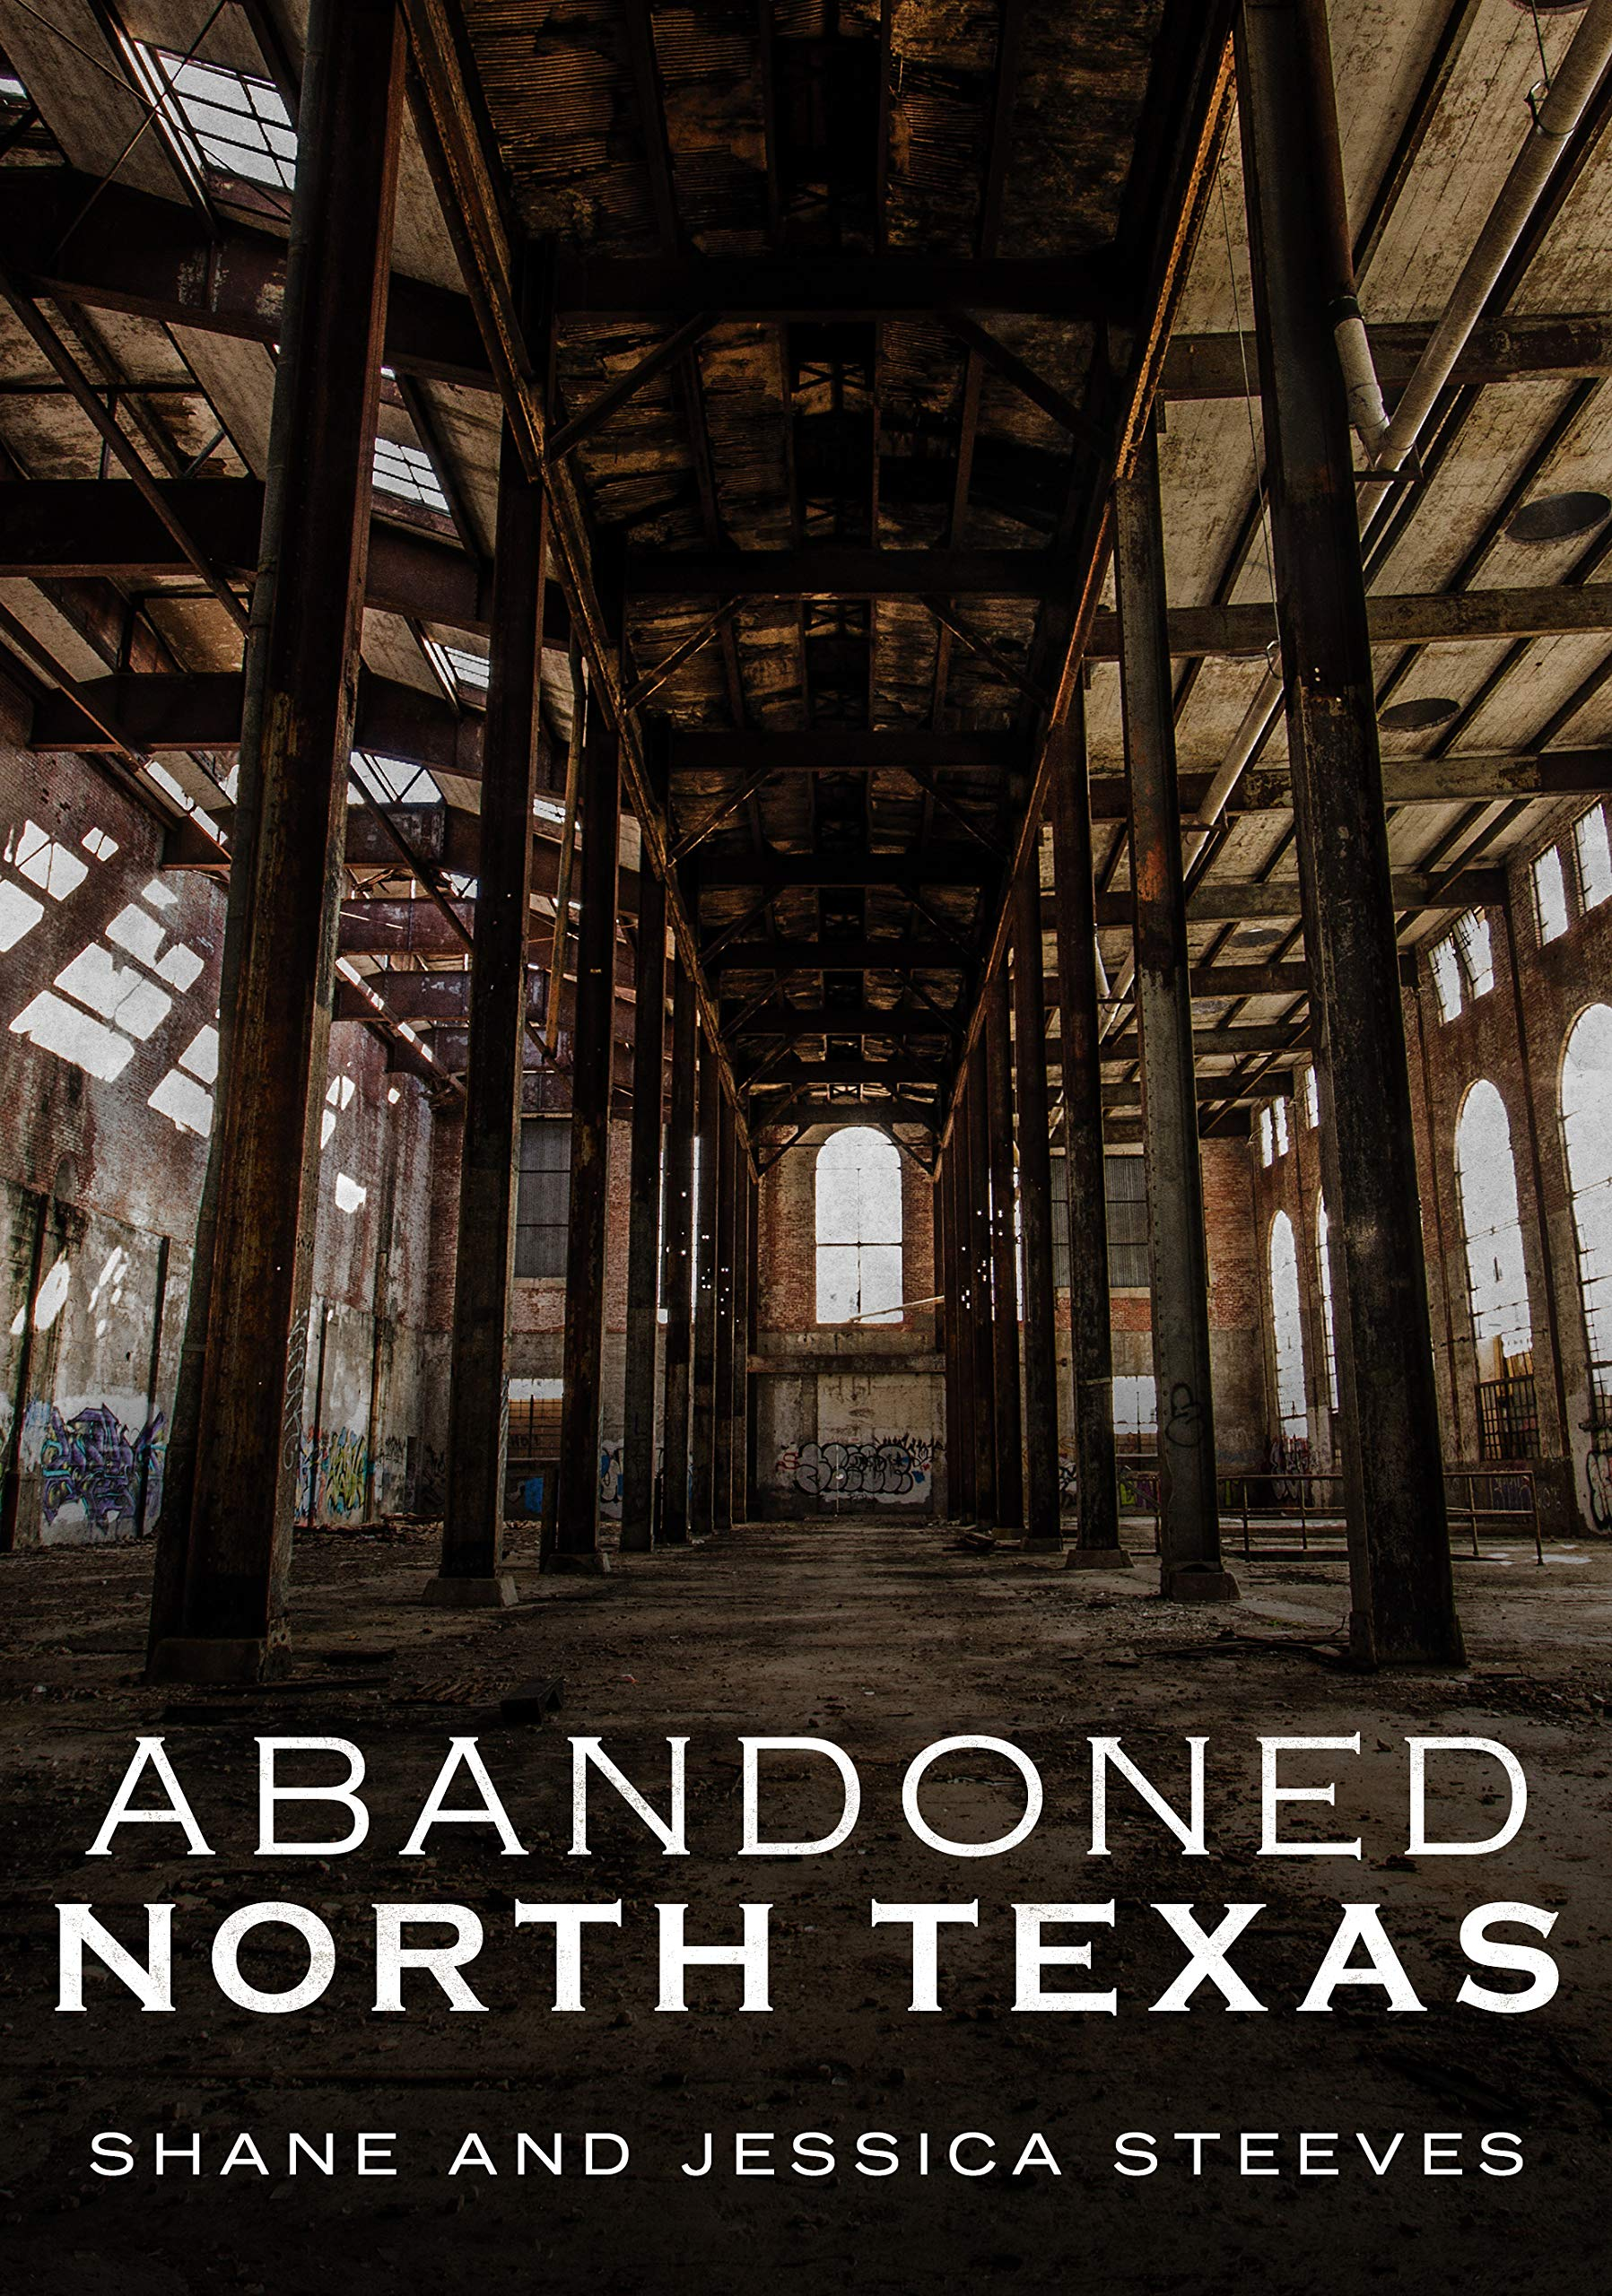 Abandoned North Texas: Shane Steeves, Jessica Steeves